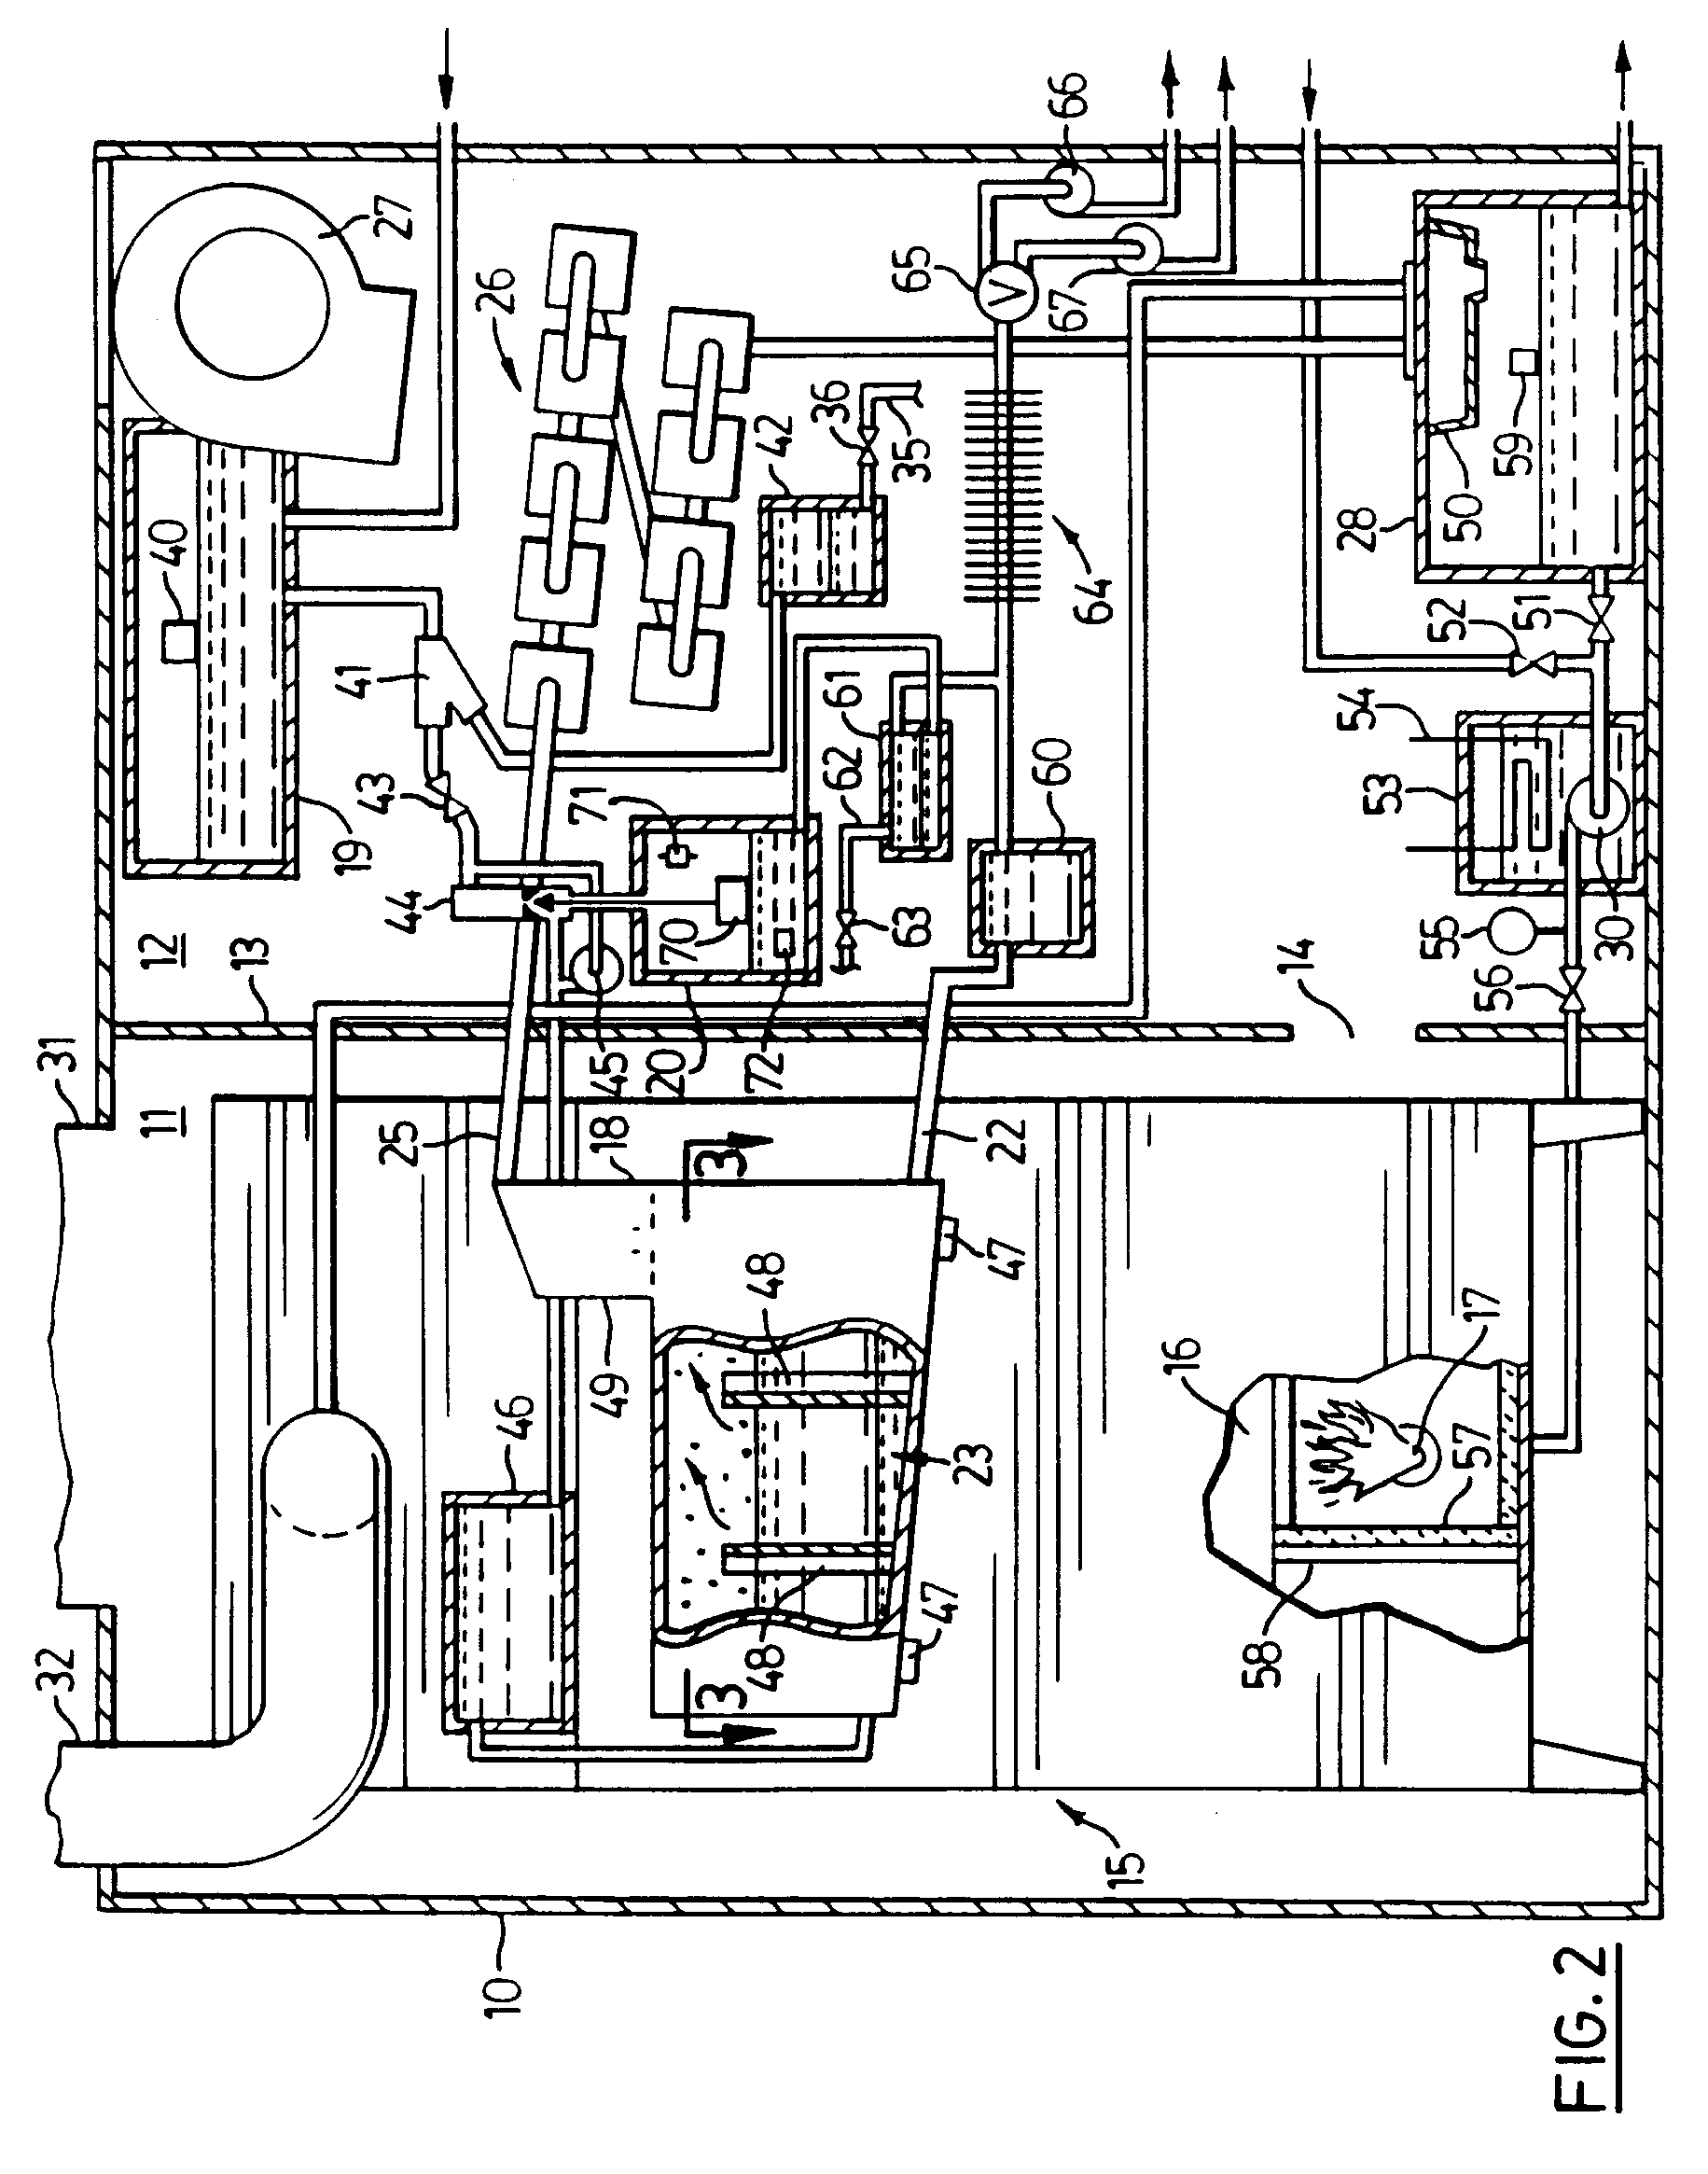 T700 Wiring Diagram For Hvac Diagrams Instructions Ladder Ac Unit Thermostat Plc S Basic 3